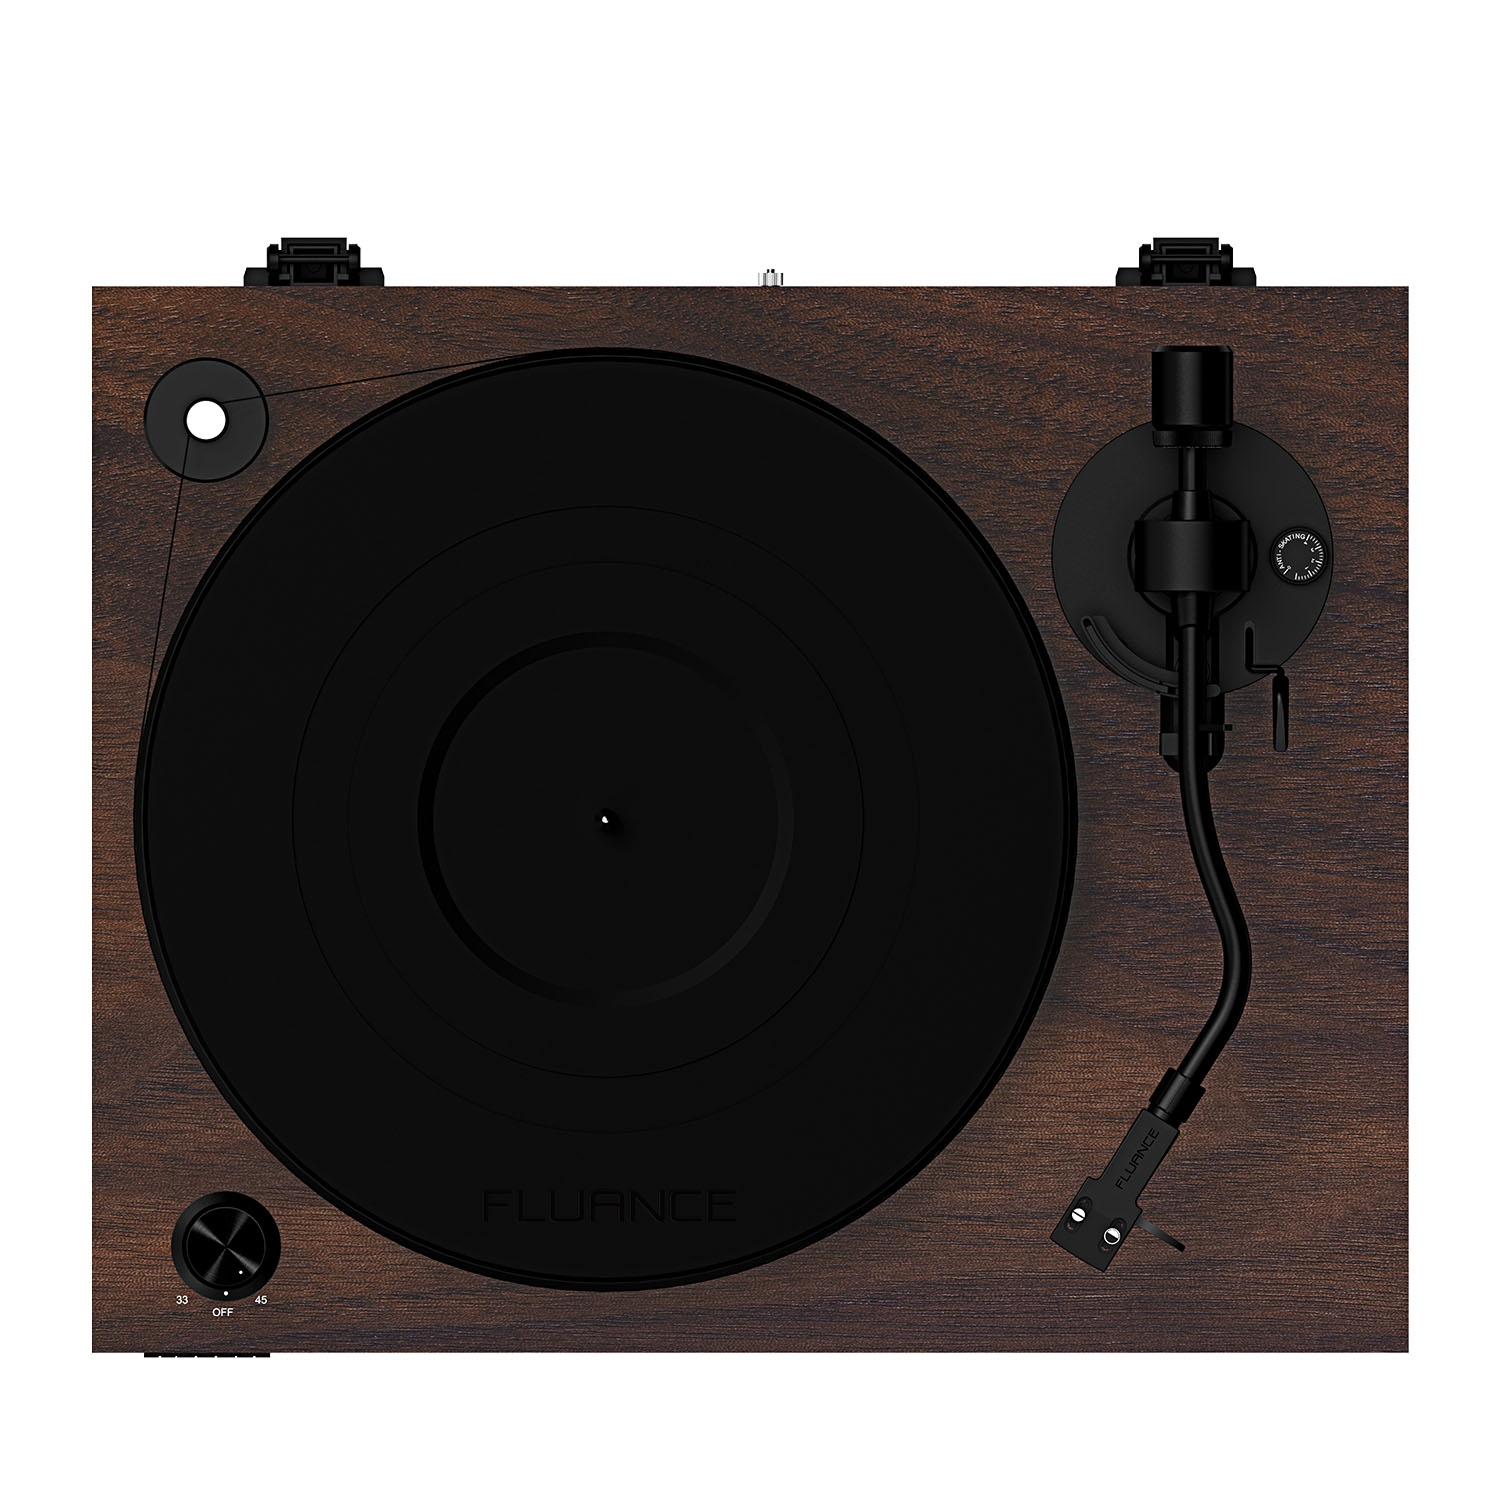 RT83 Reference High Fidelity Vinyl Turntable